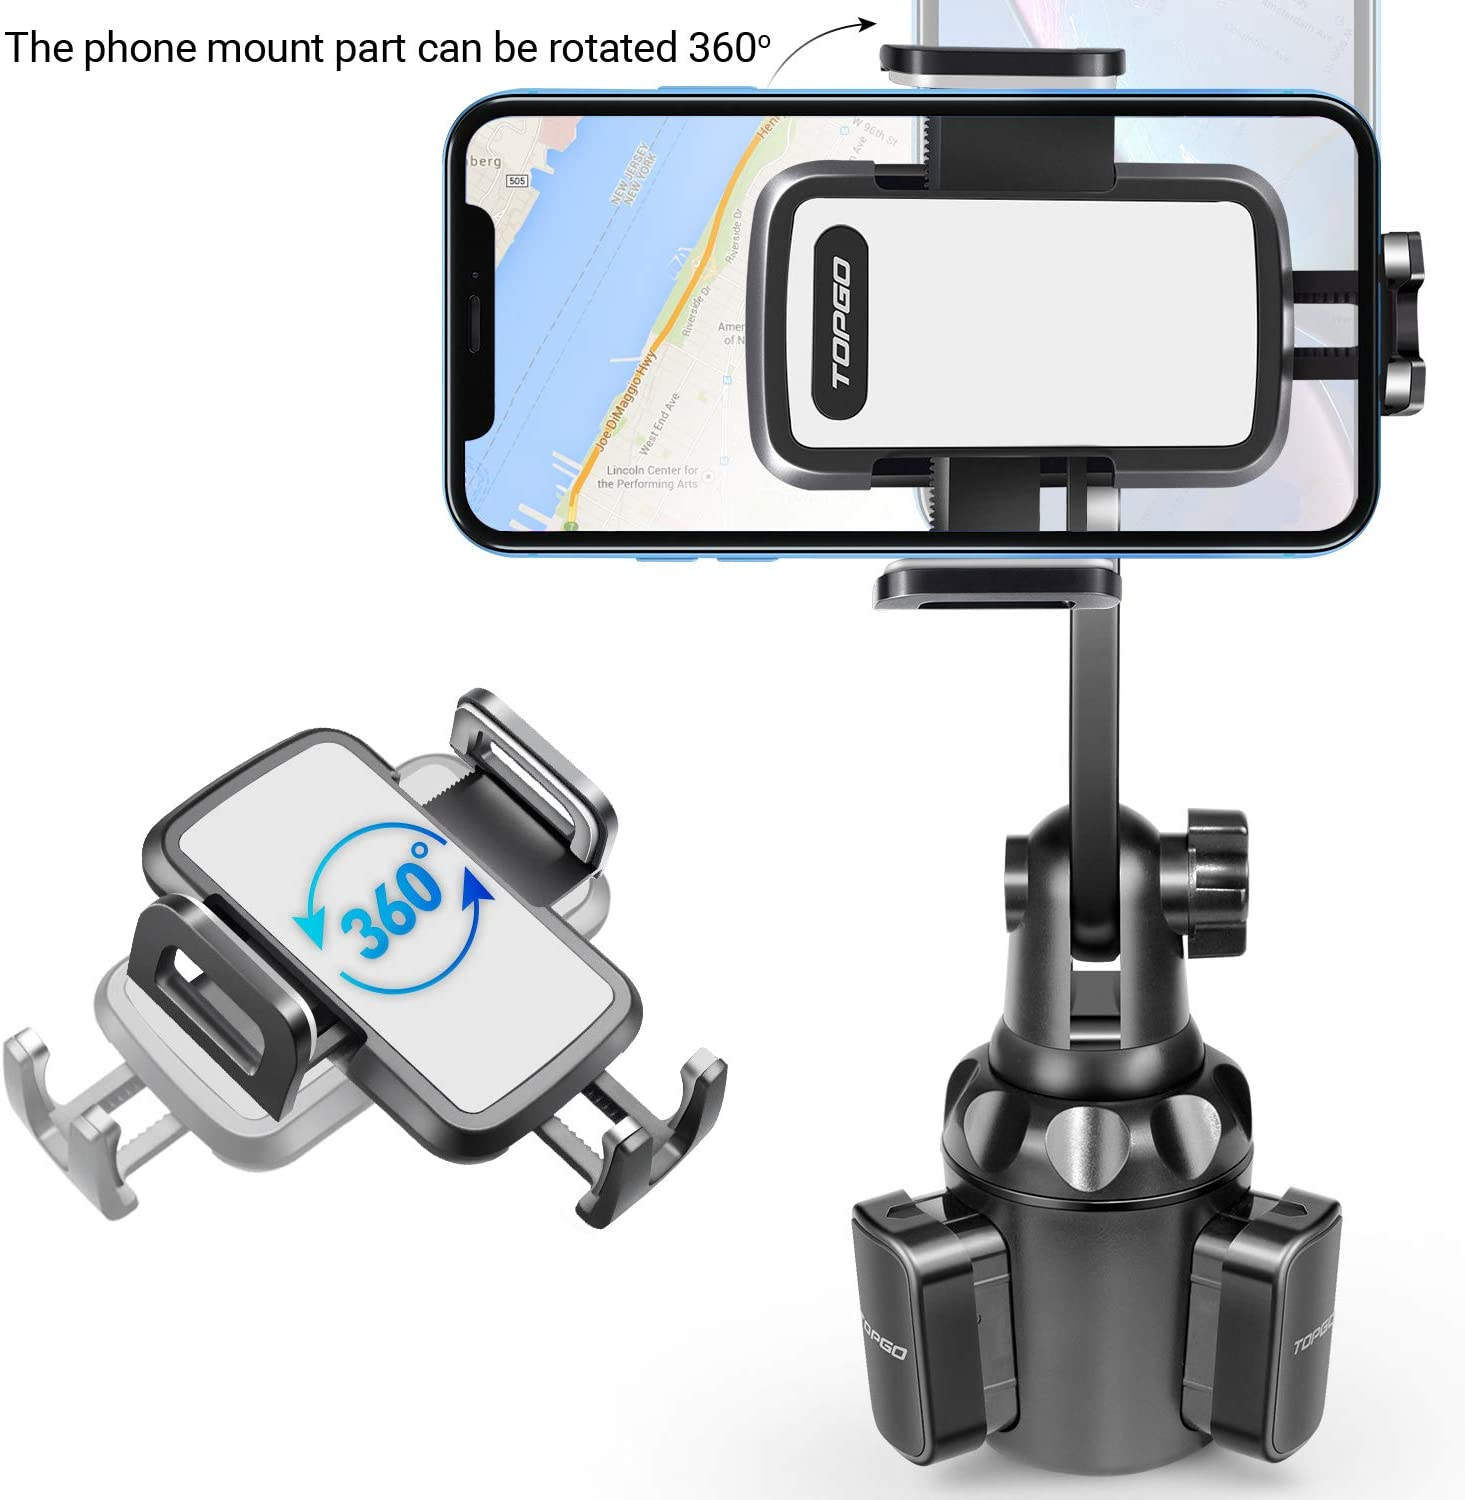 Blue Car-Cup-Holder-Phone-Mount Adjustable Pole Automobile Cup Holder Smart Phone Cradle Car Mount for iPhone 11 Pro//XR//XS Max//X//8//7 Plus//6s//Samsung S10 //Note 9//S8 Plus//S7 Edge